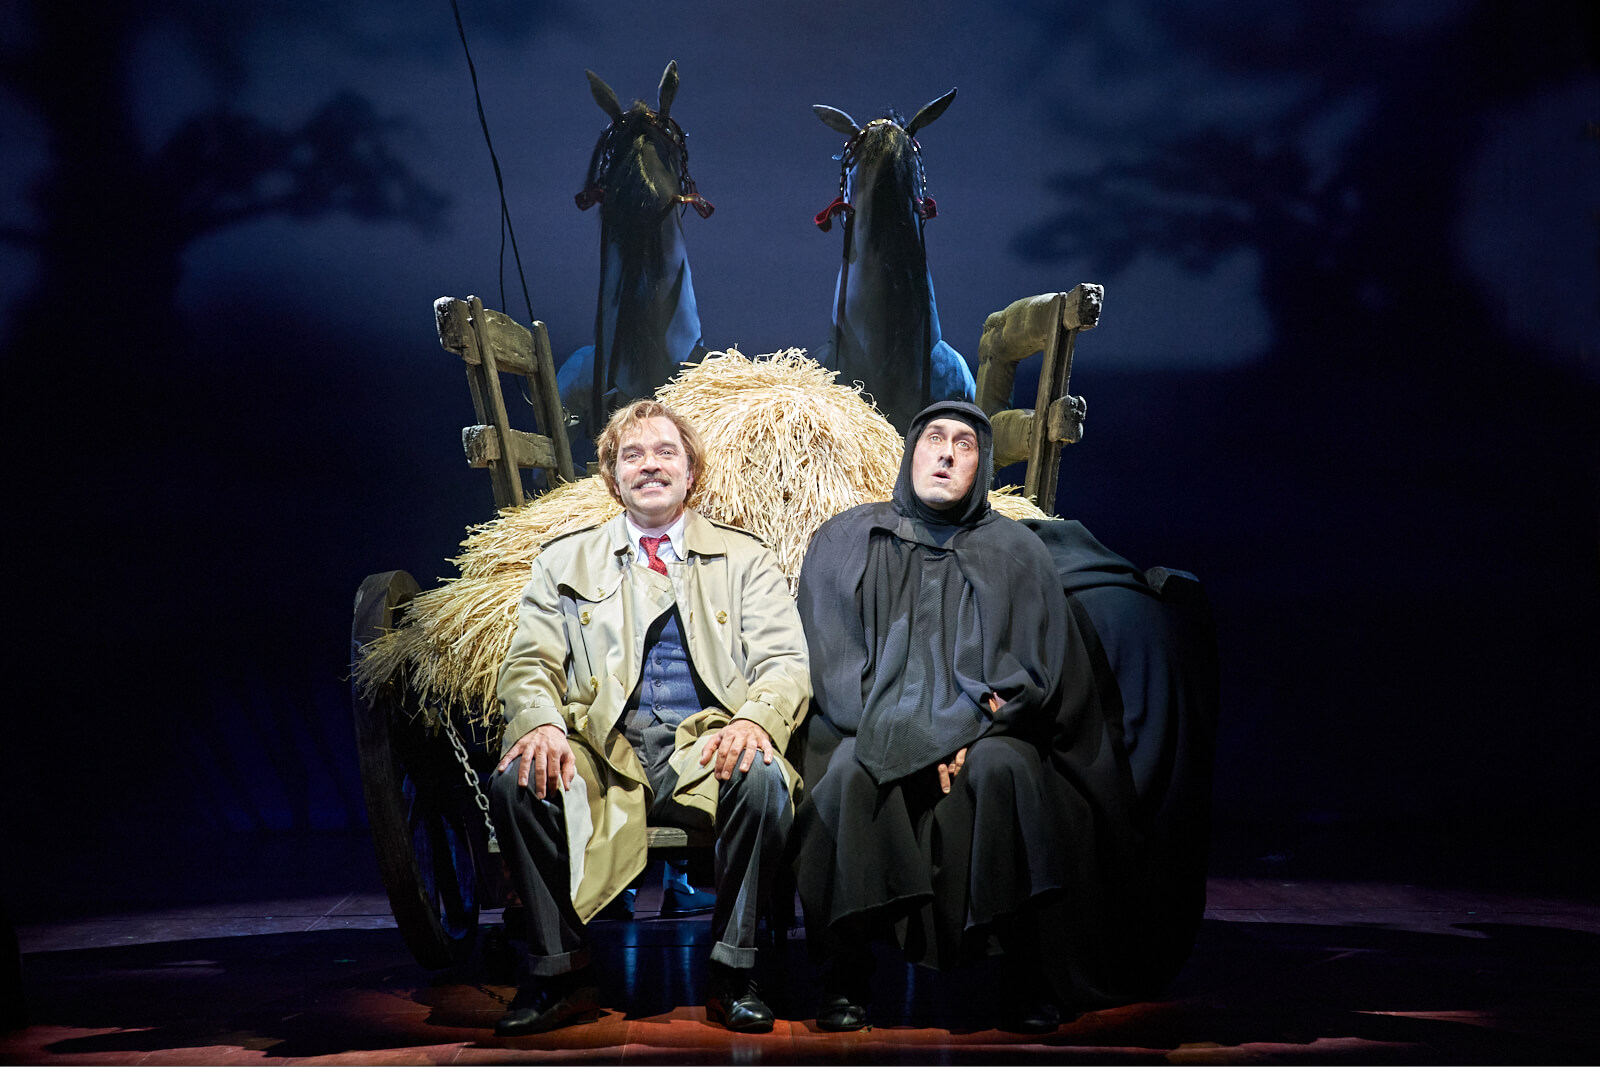 """Sitting in a horse drawn carriage full of hay, Dr. Frankenstein (Hadley Fraser) and Igor (Ross Noble) smile as they finish singing the number """"Together Again""""."""